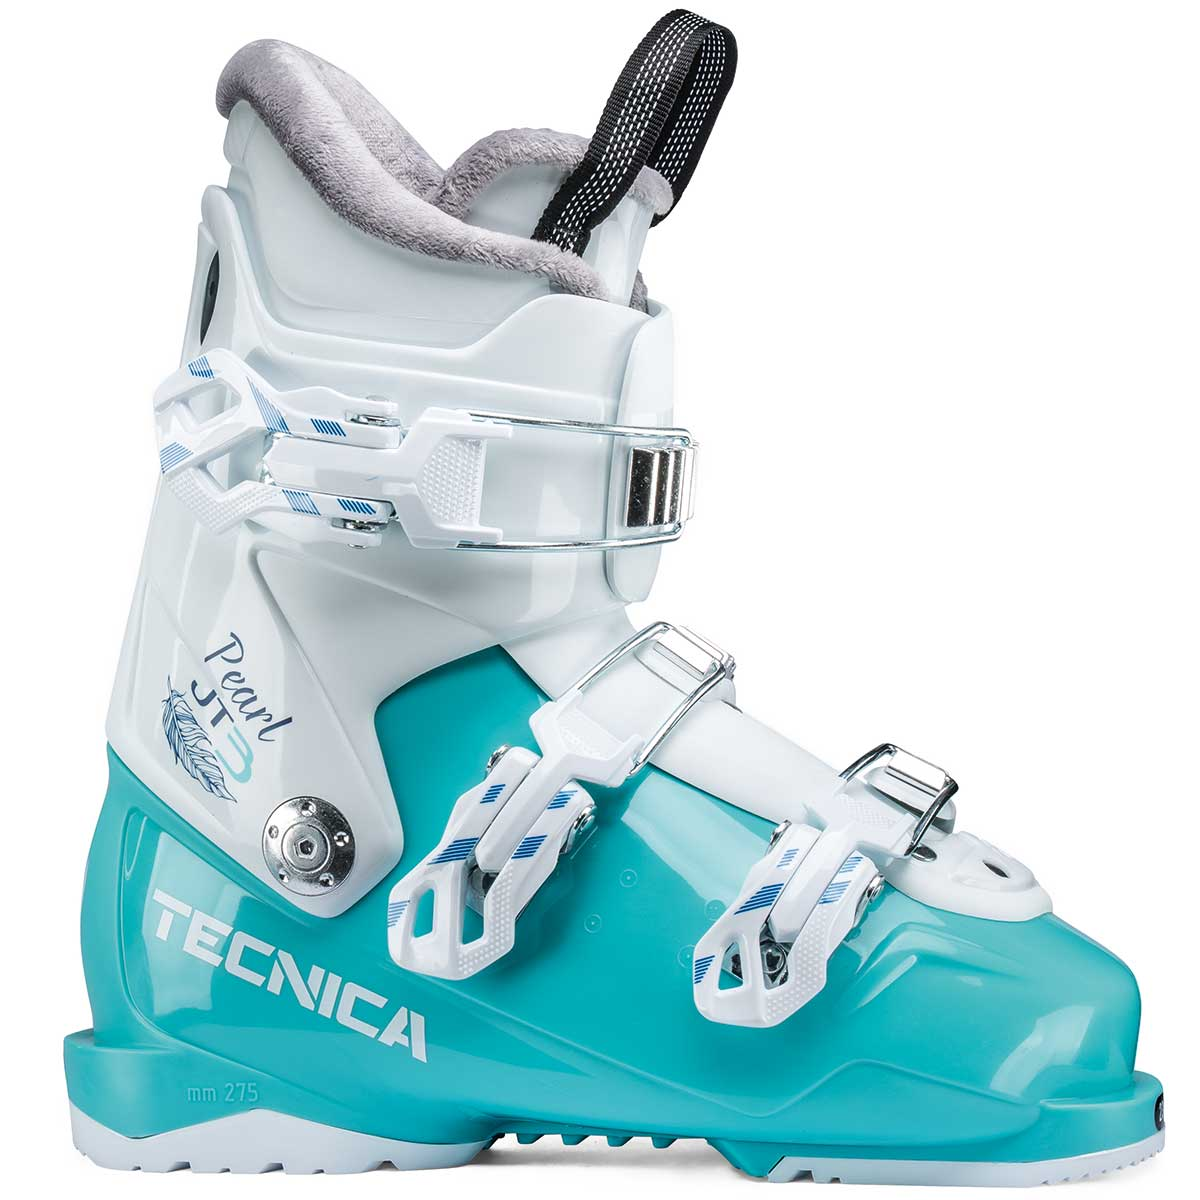 Tecnica JT 3 Pearl junior ski boot in light blue